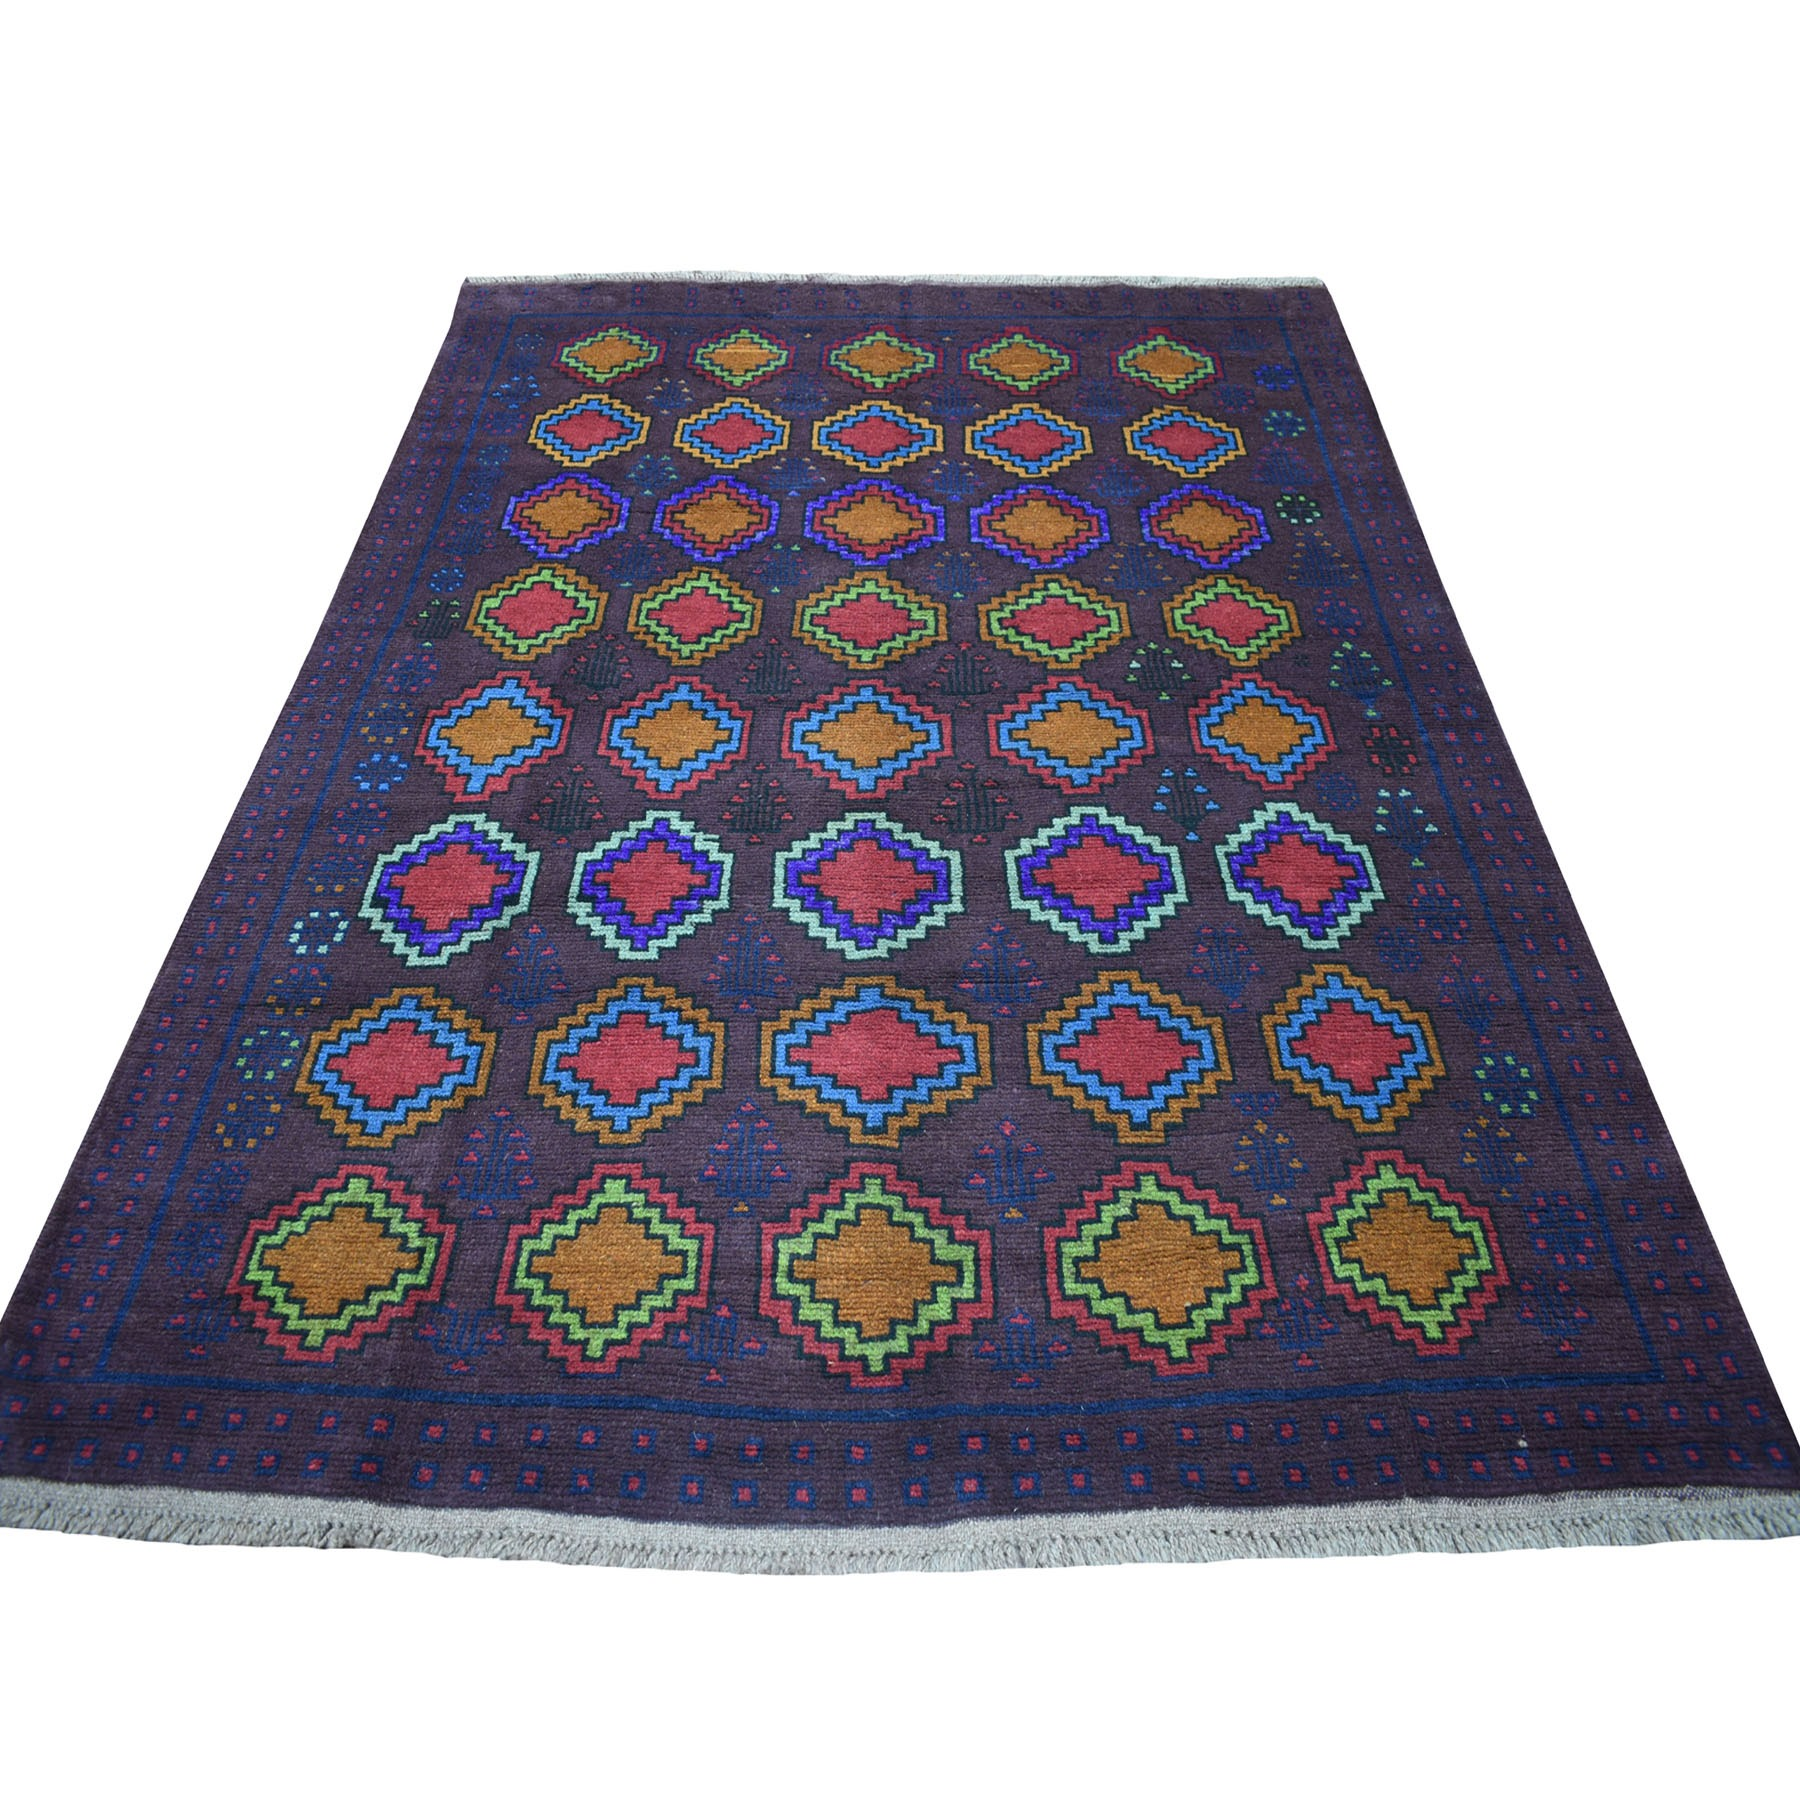 "5'10""x7'8"" Purple Geometric Design Colorful Afghan Baluch Hand Knotted Pure Wool Oriental Rug"